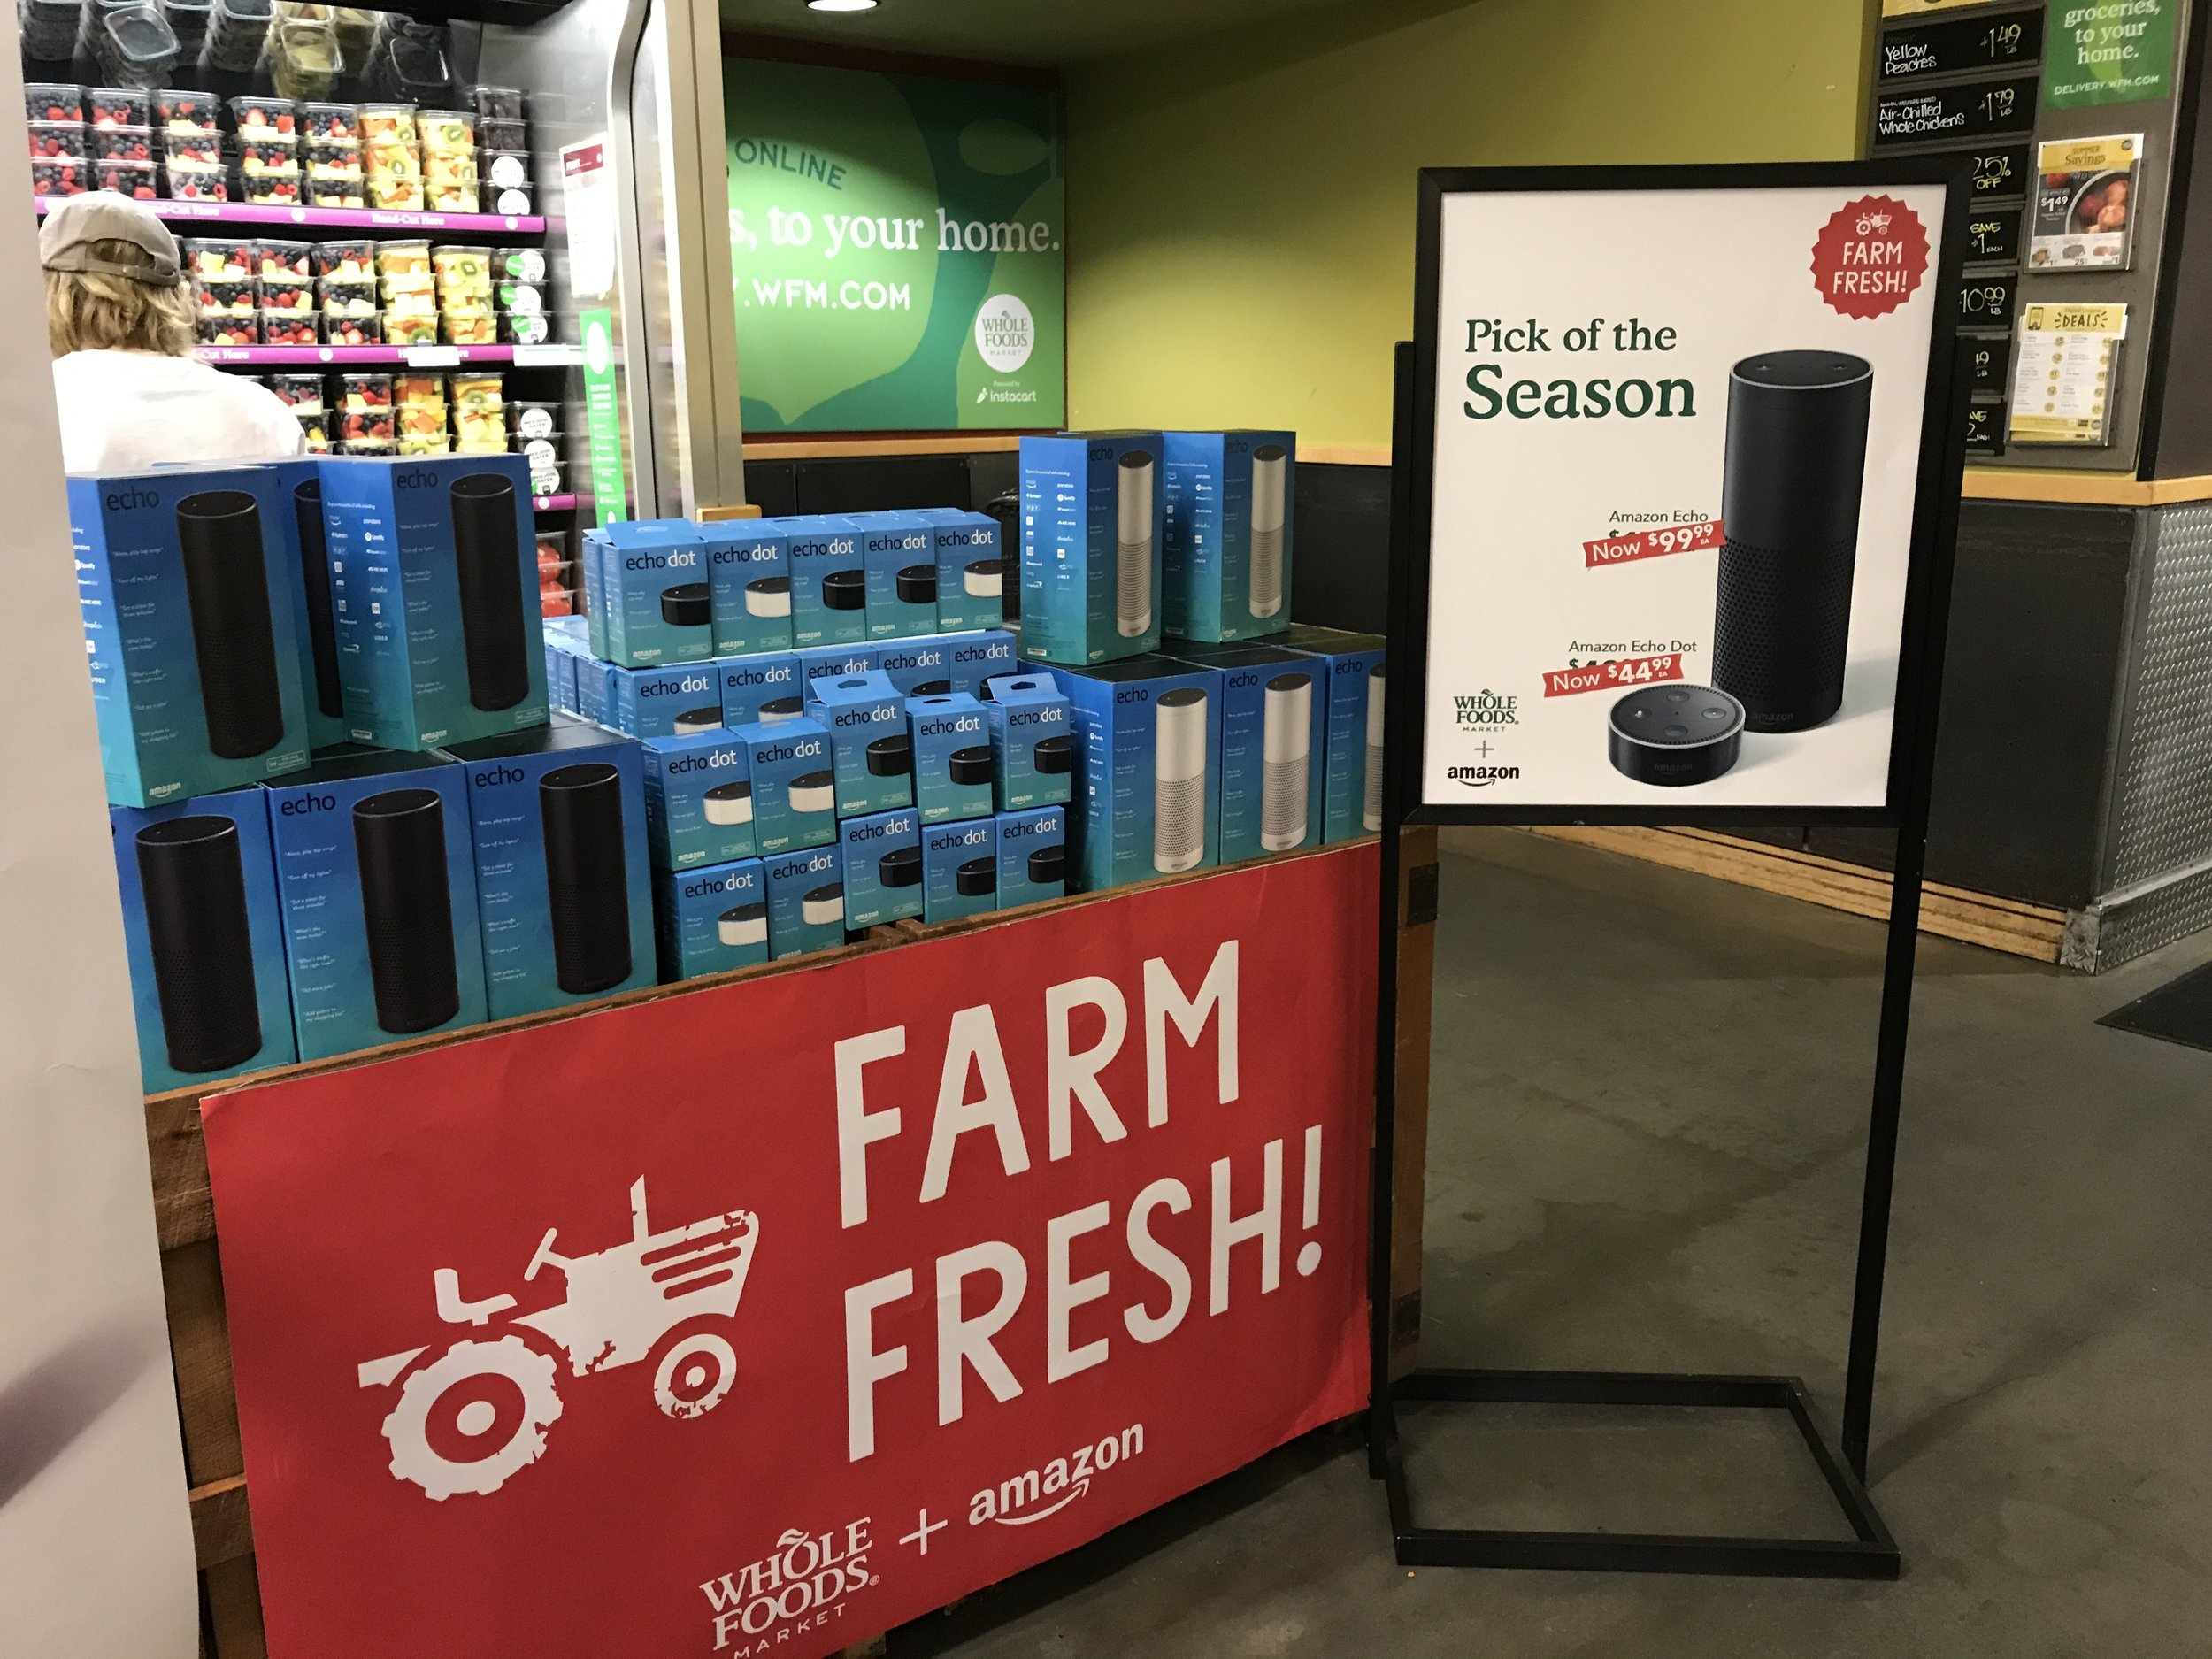 Amazon Echo is on sale at Whole Foods